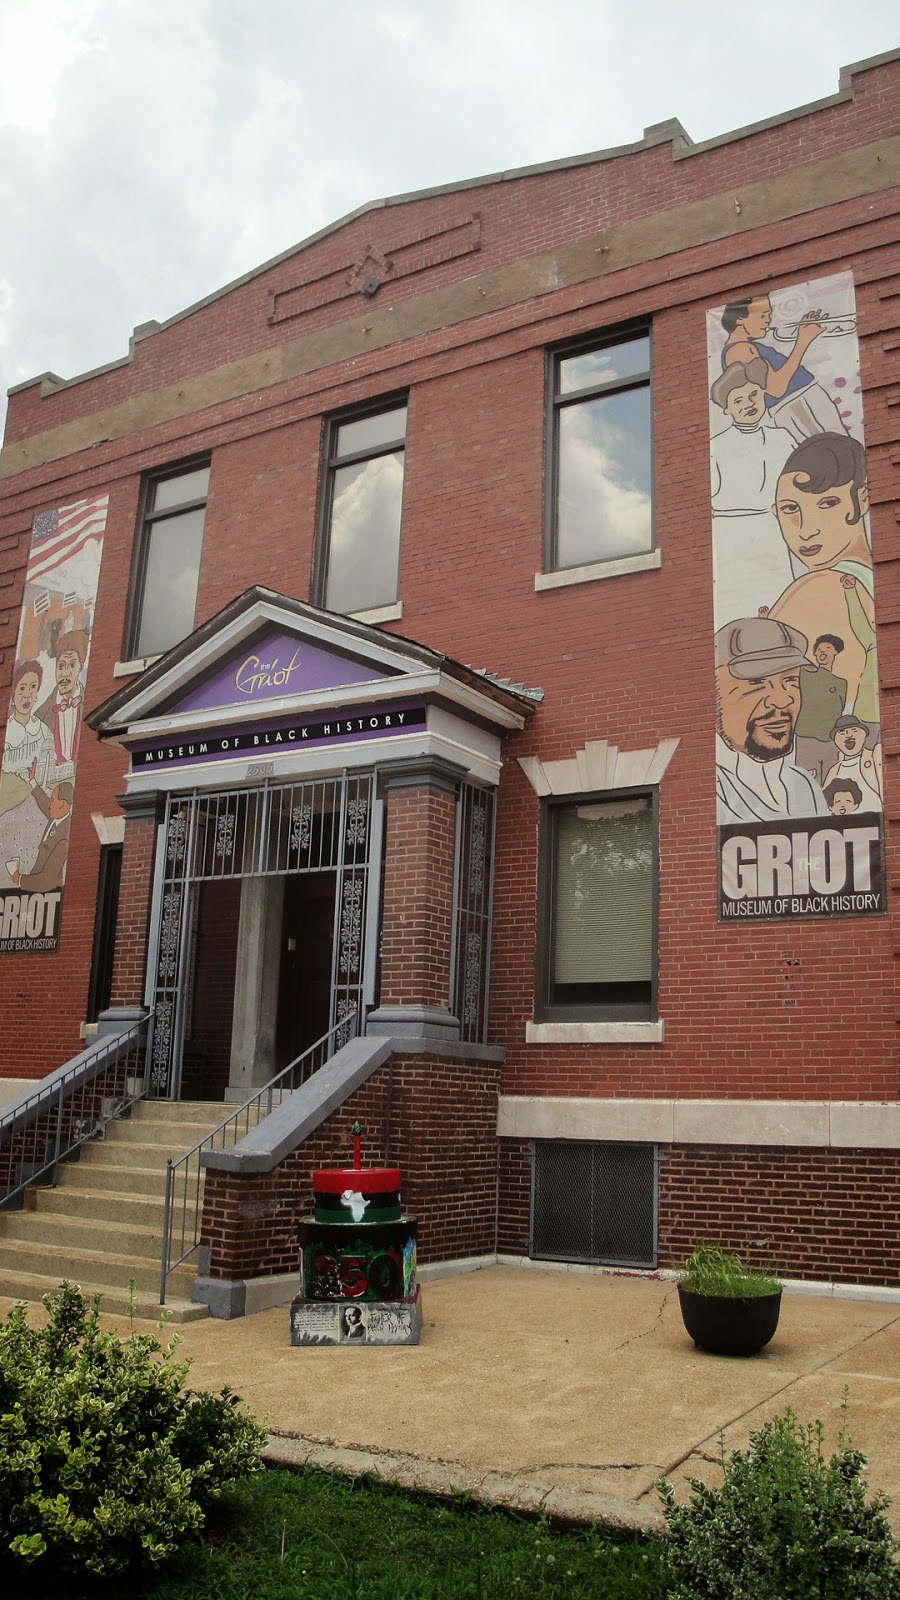 The Griot Museum of Black History - Wikipedia